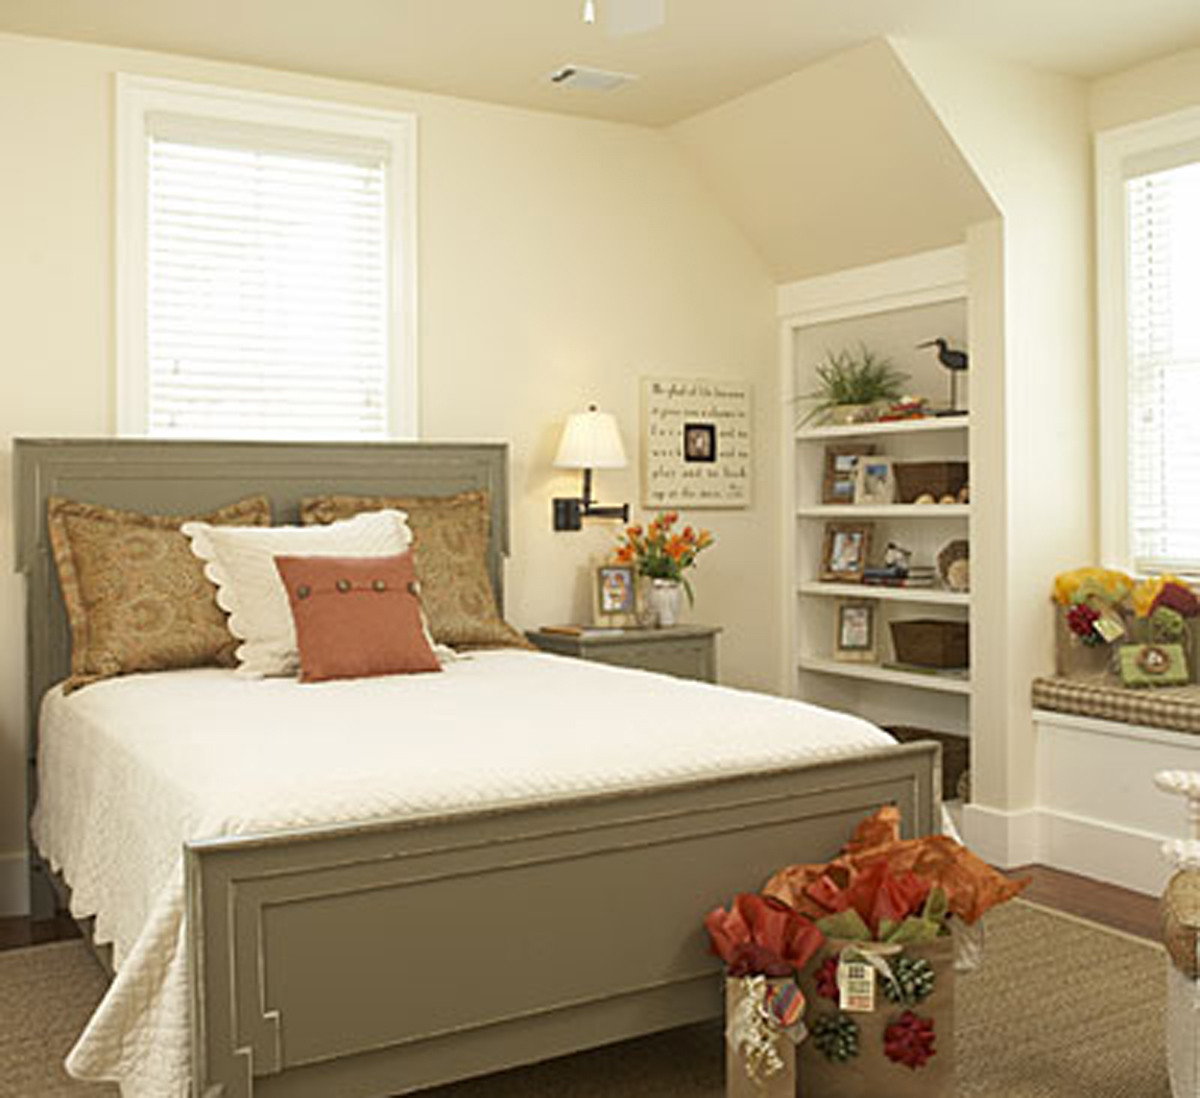 Best ideas about Small Office Guest Room Ideas . Save or Pin fice bedroom ideas office interior ideas modern office Now.